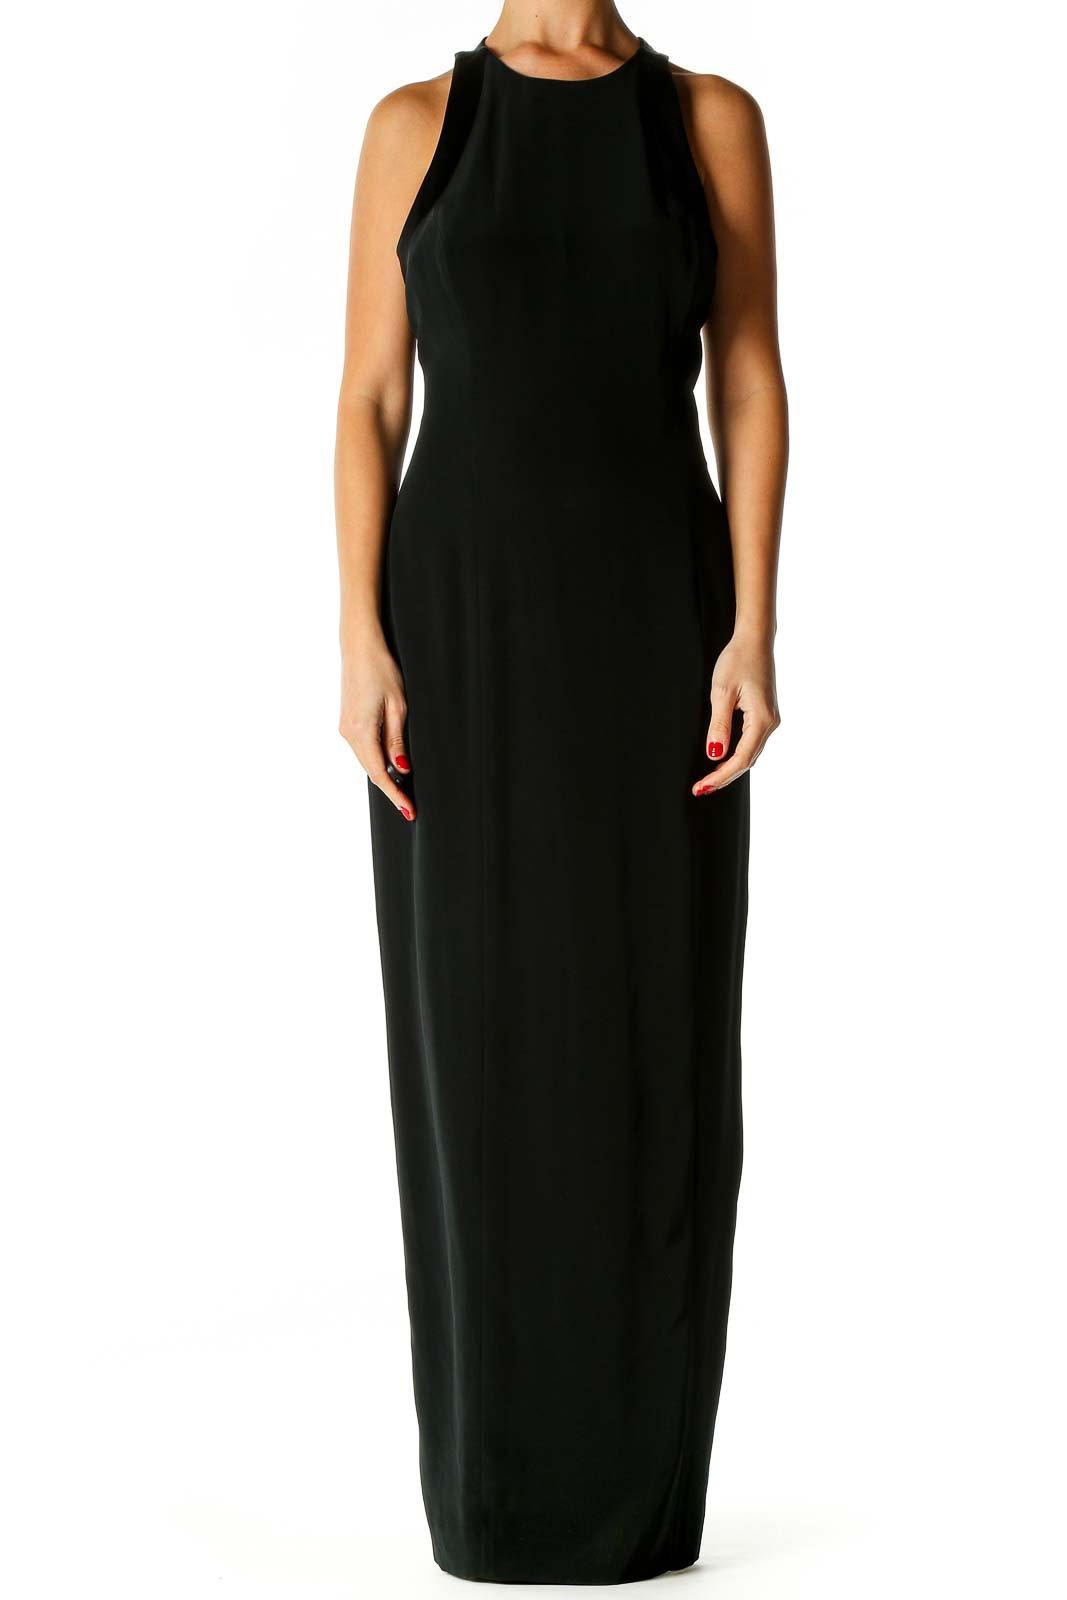 Black Solid Classic Column Dress Front